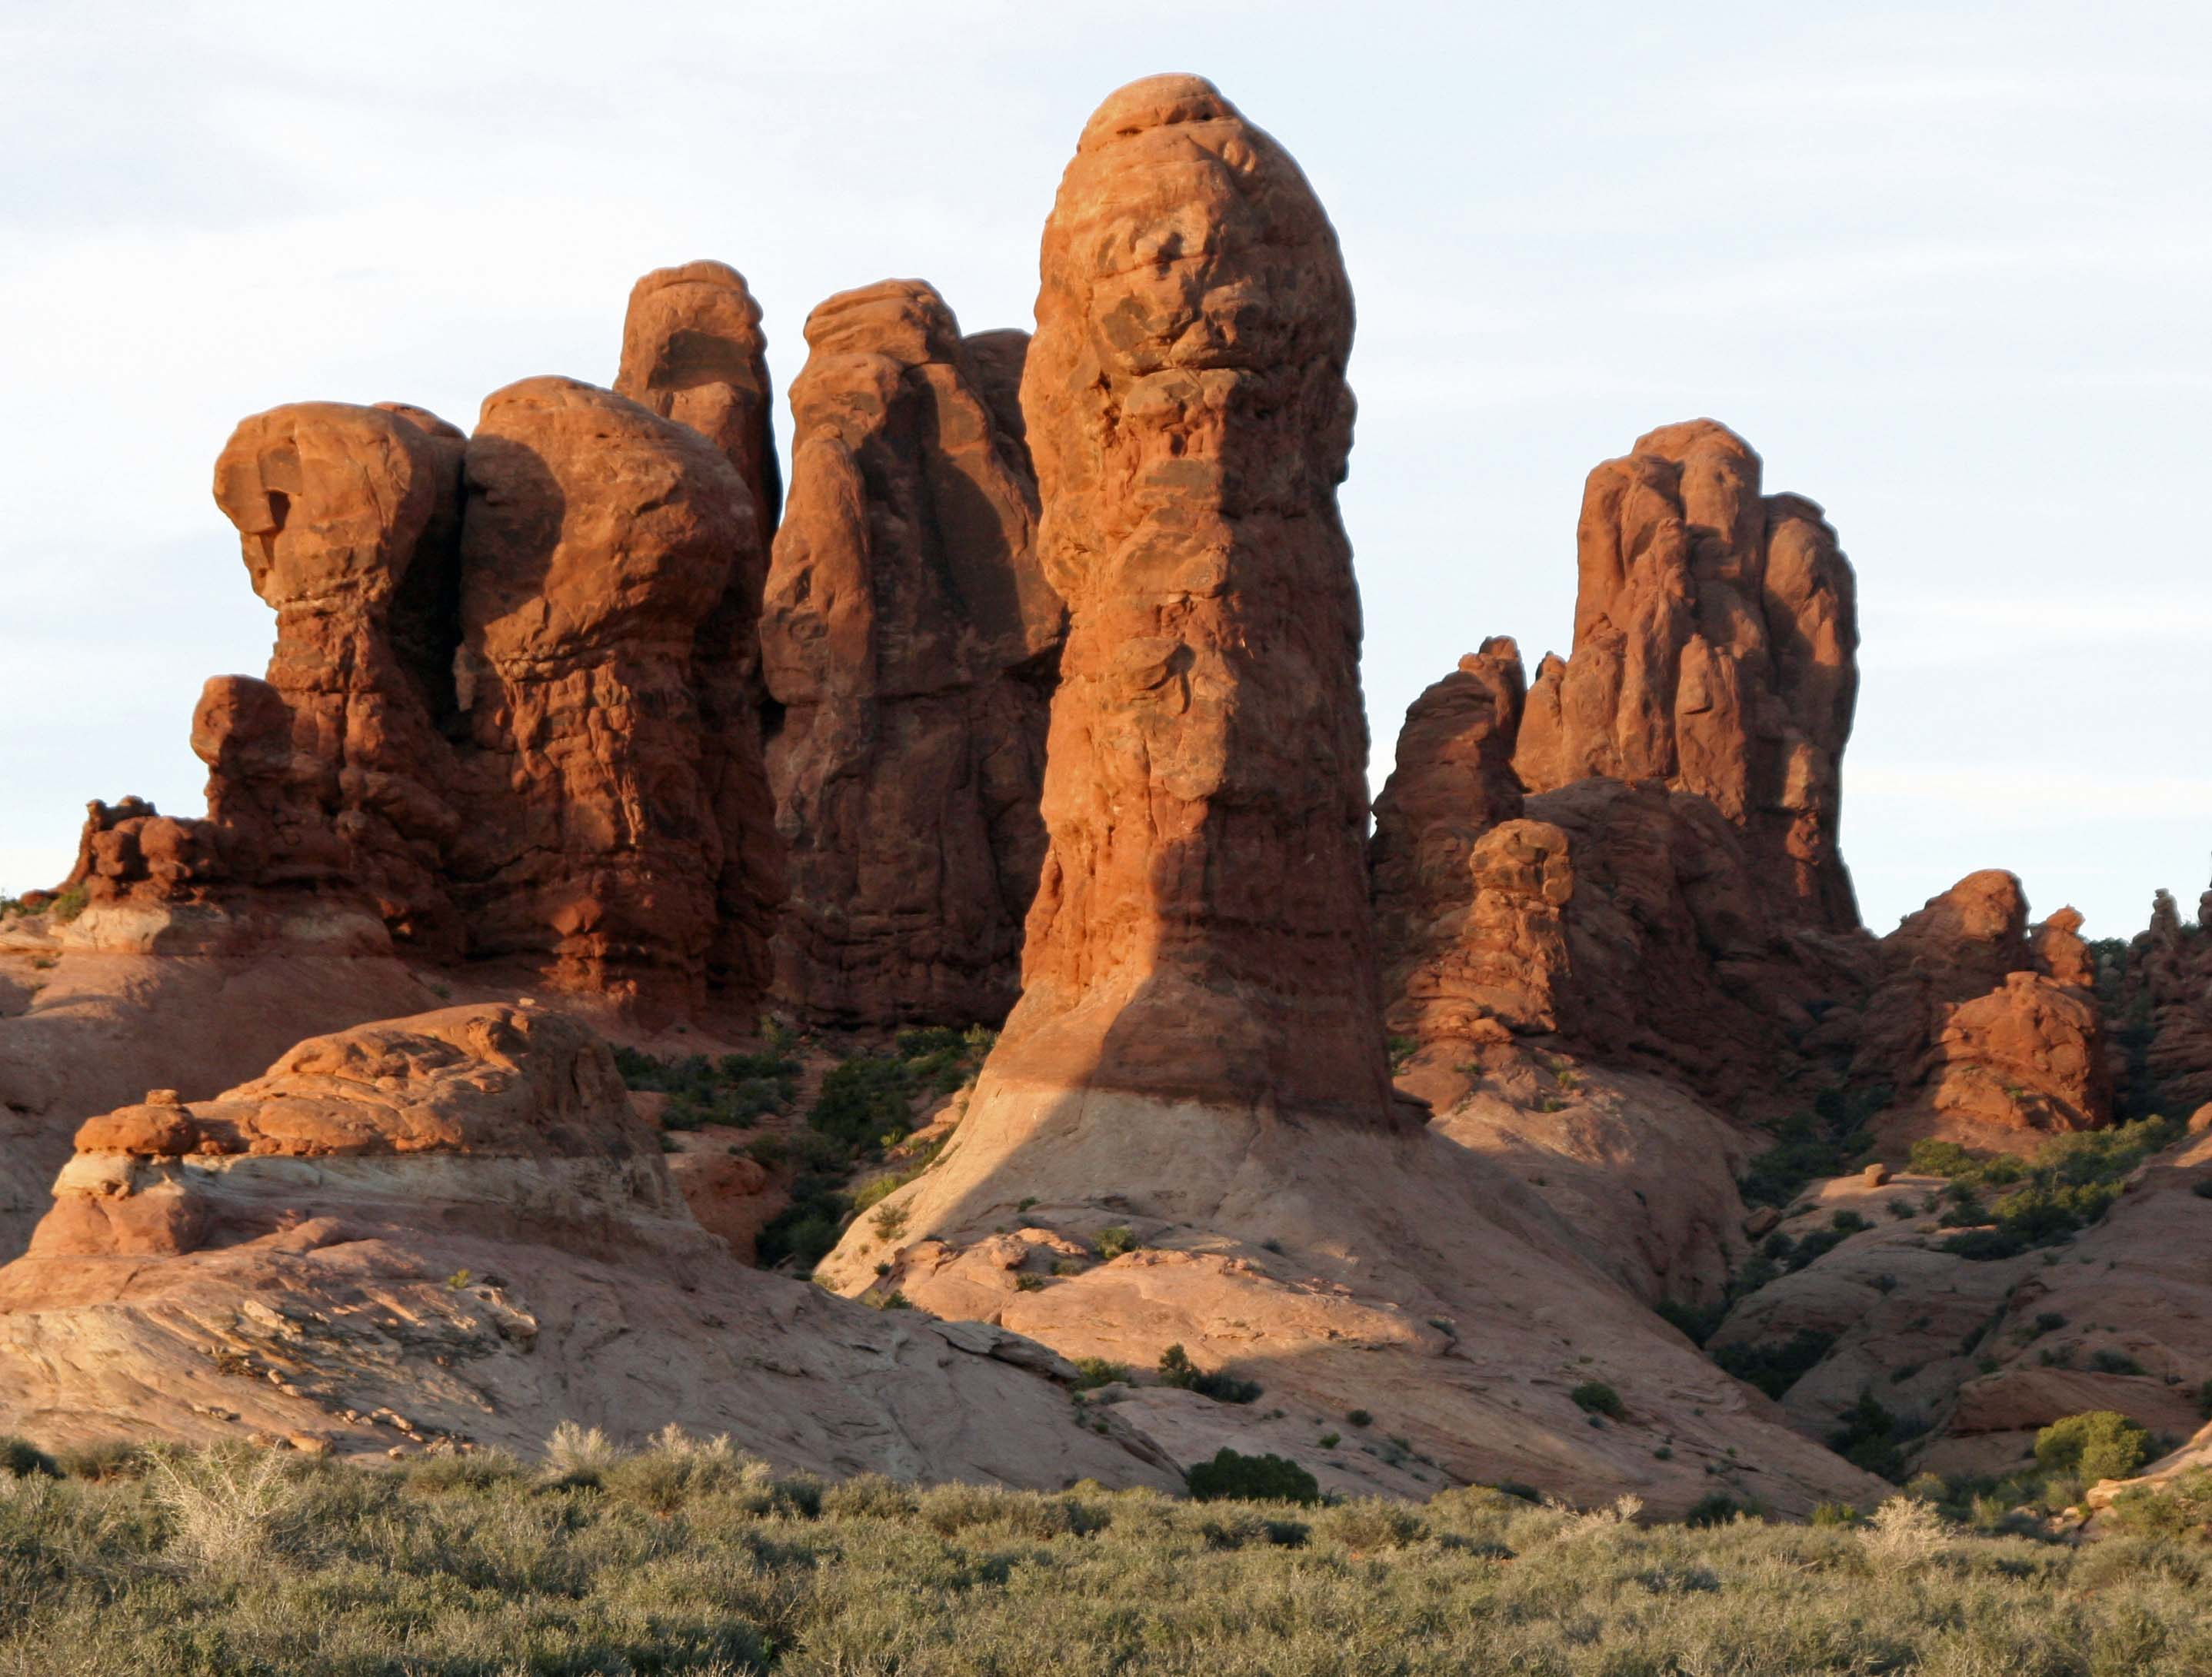 Stone sculptures at Arches National Park. Photo by Curtis Mekemson.